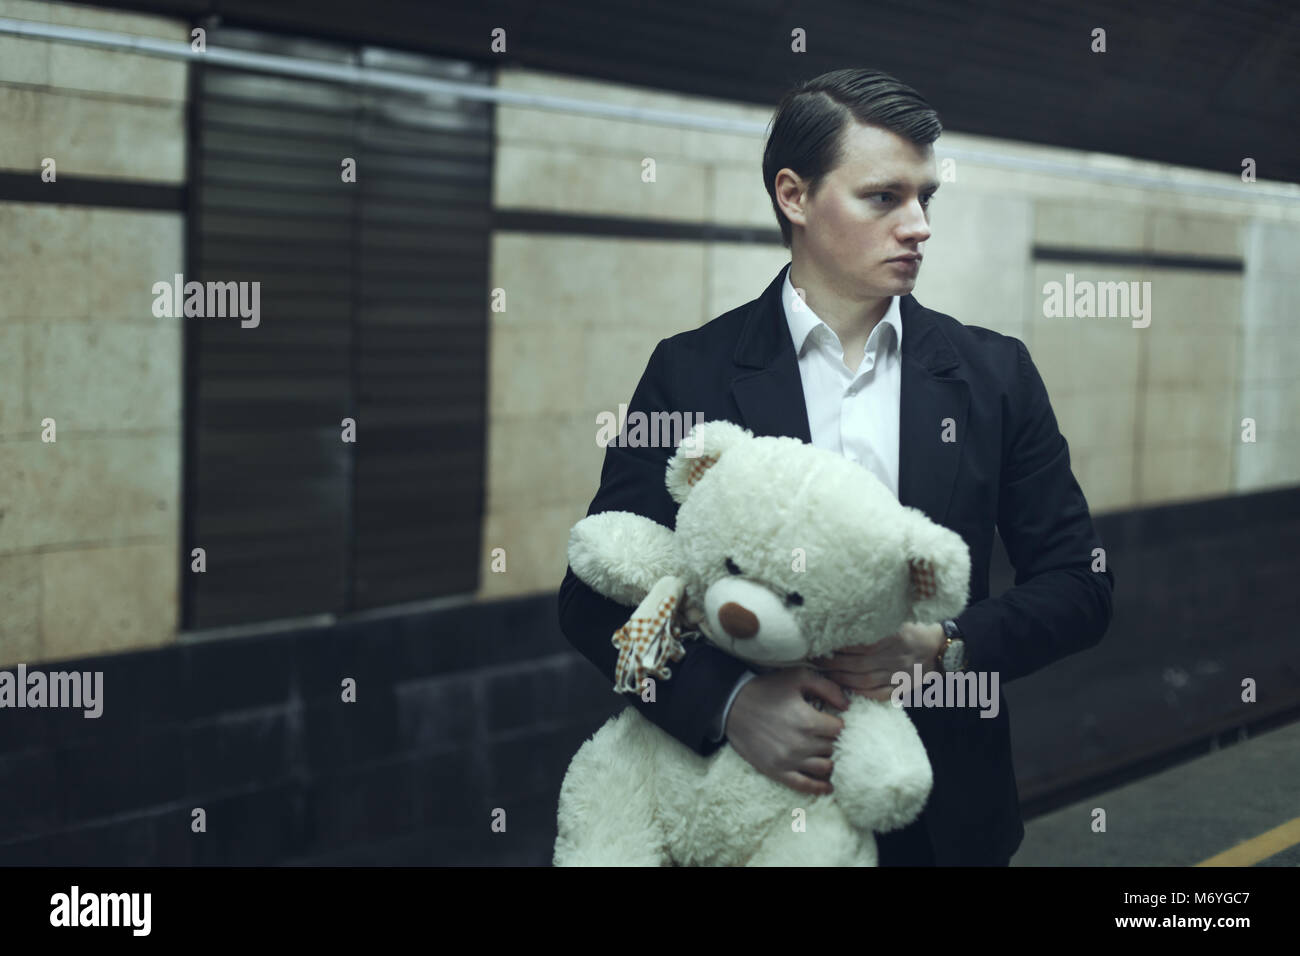 Young man with a teddy bear, he worries before the meeting. - Stock Image